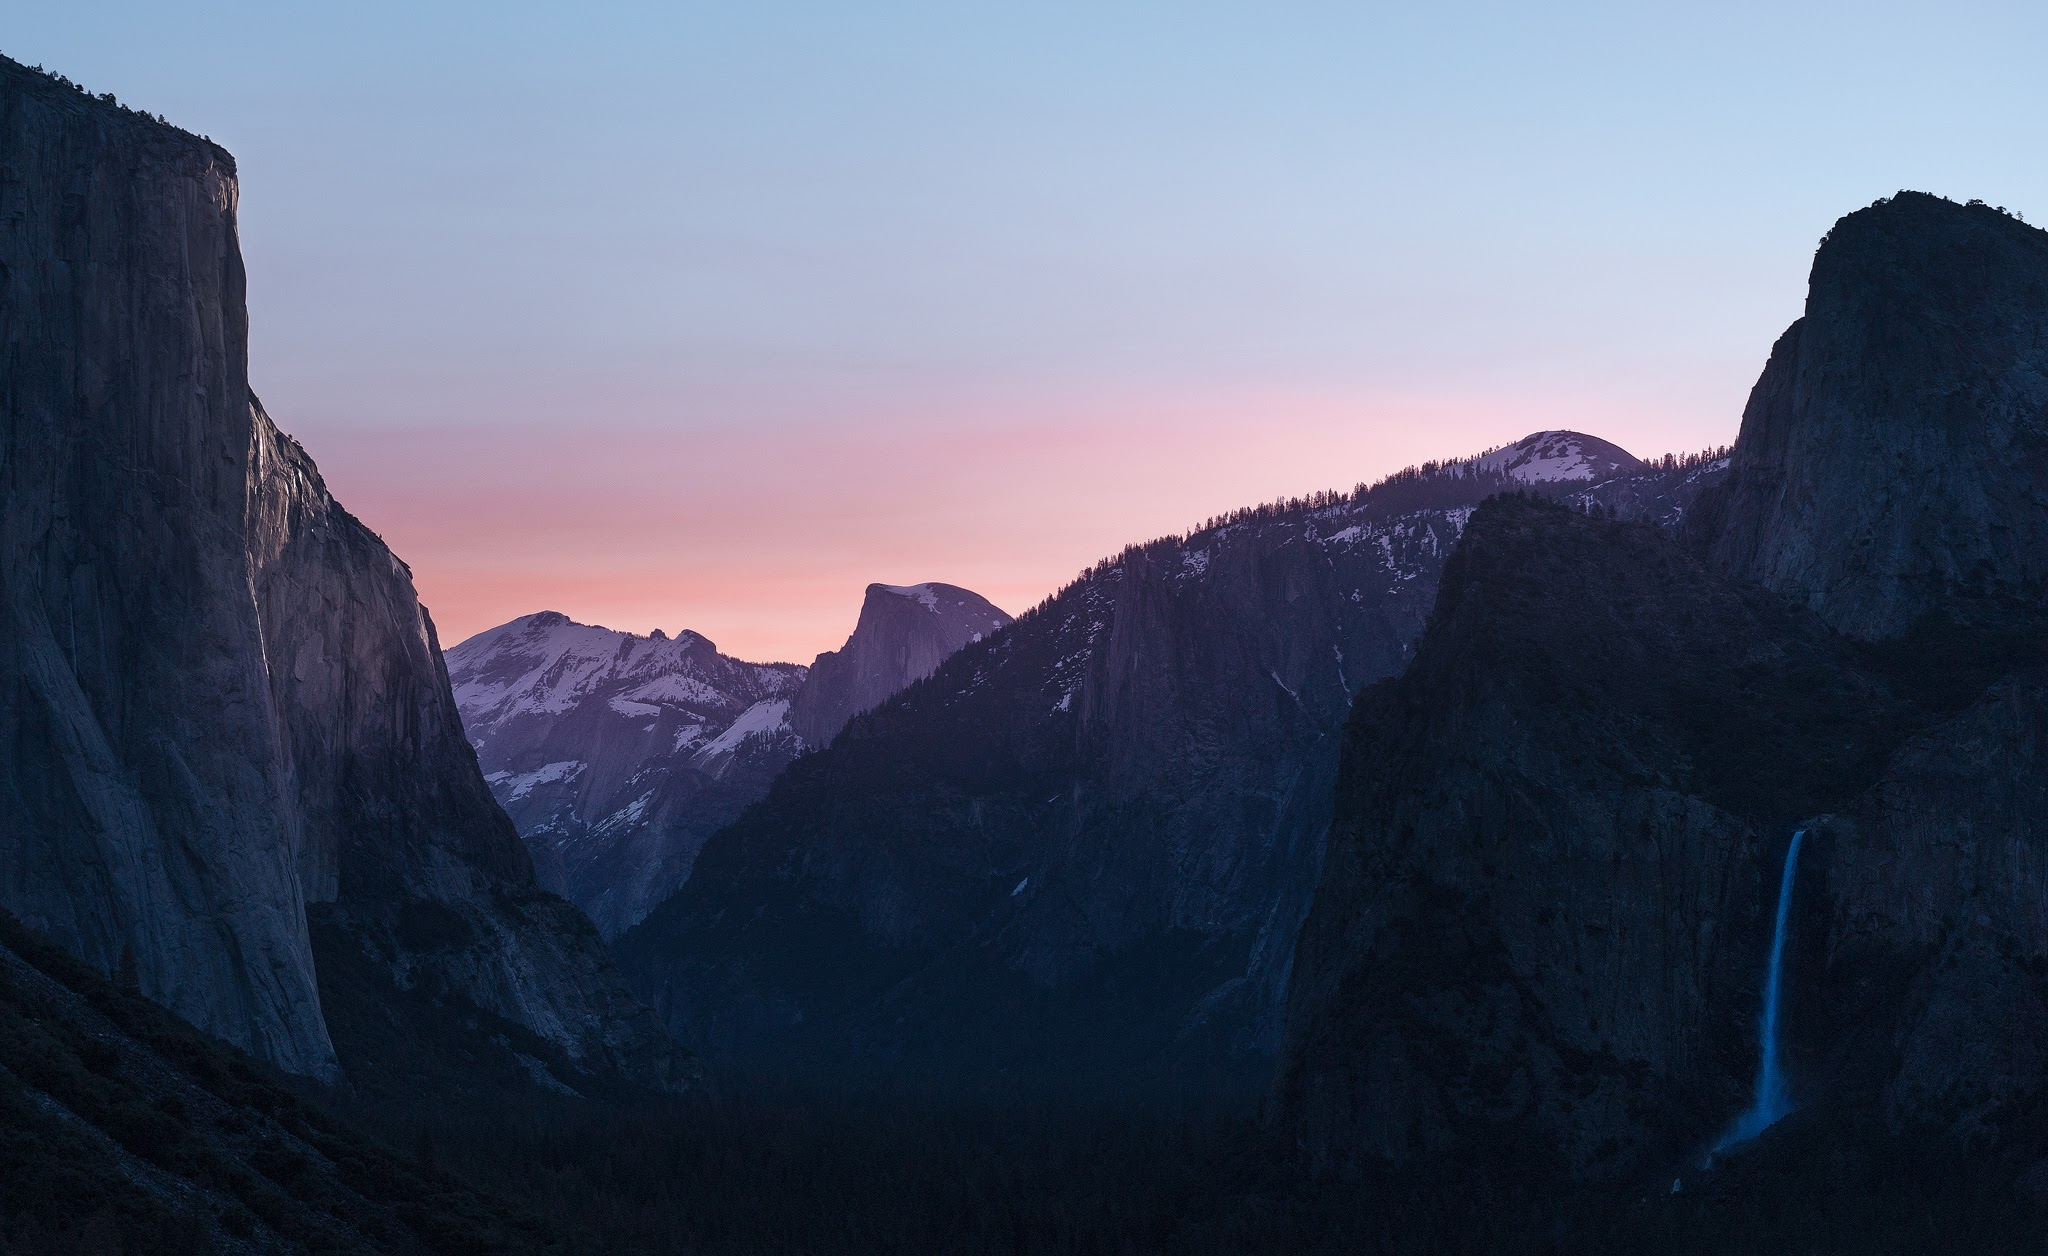 Yosemite-1-Web Prepared (1).jpg